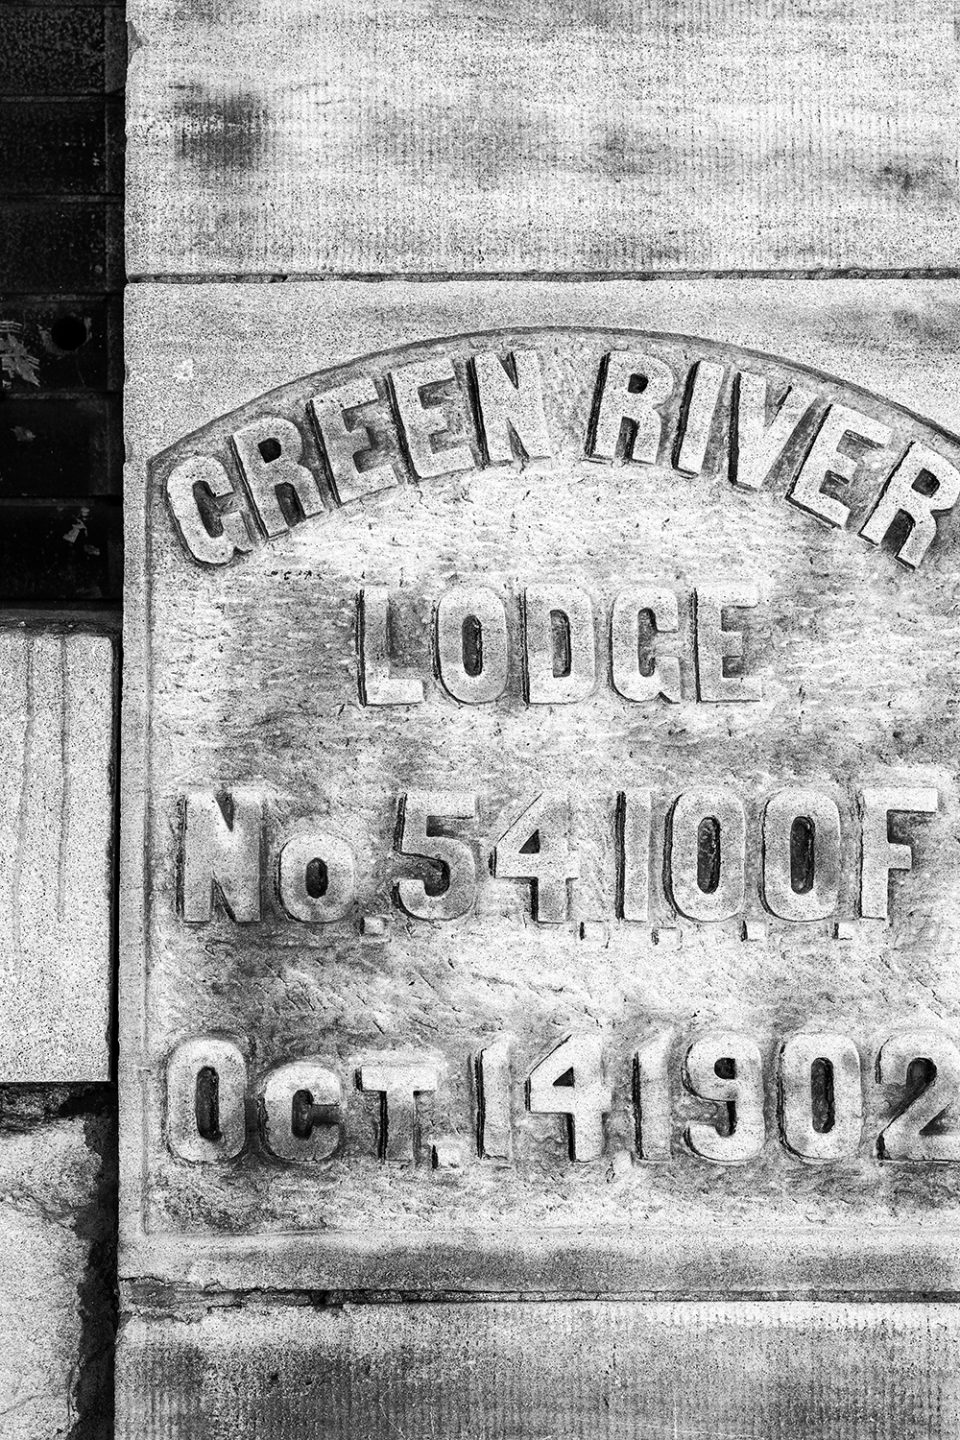 Carved stone tablet on the Green River Lodge - Oddfellows Hall on 9th Street in Hopkinsville. Originally a Cumberland Telephone and Telegraph Office